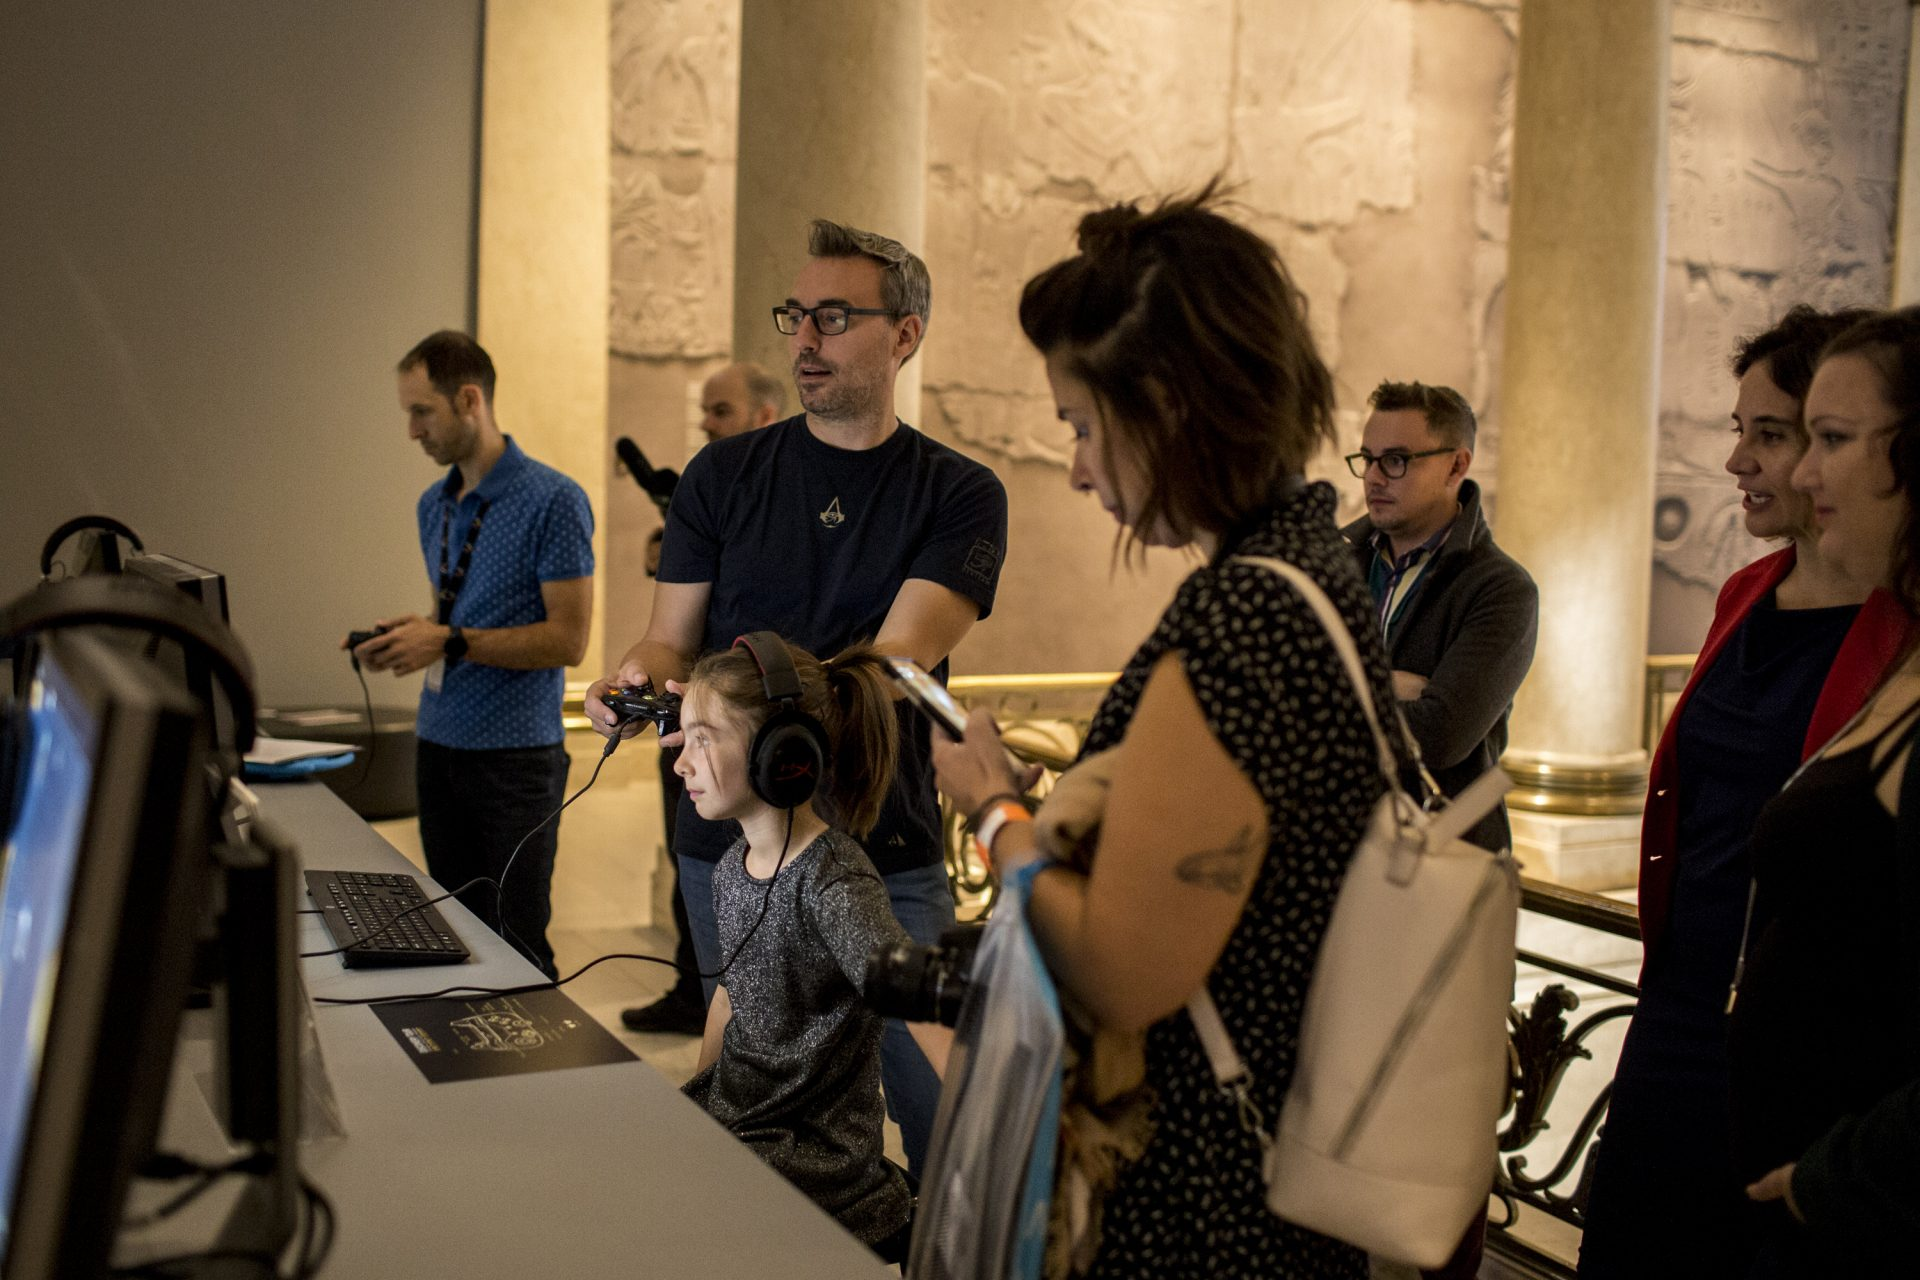 Ubisoft is partnering with the Museum of Fine Arts of Montreal for the Egyptian Mummies Exhibition